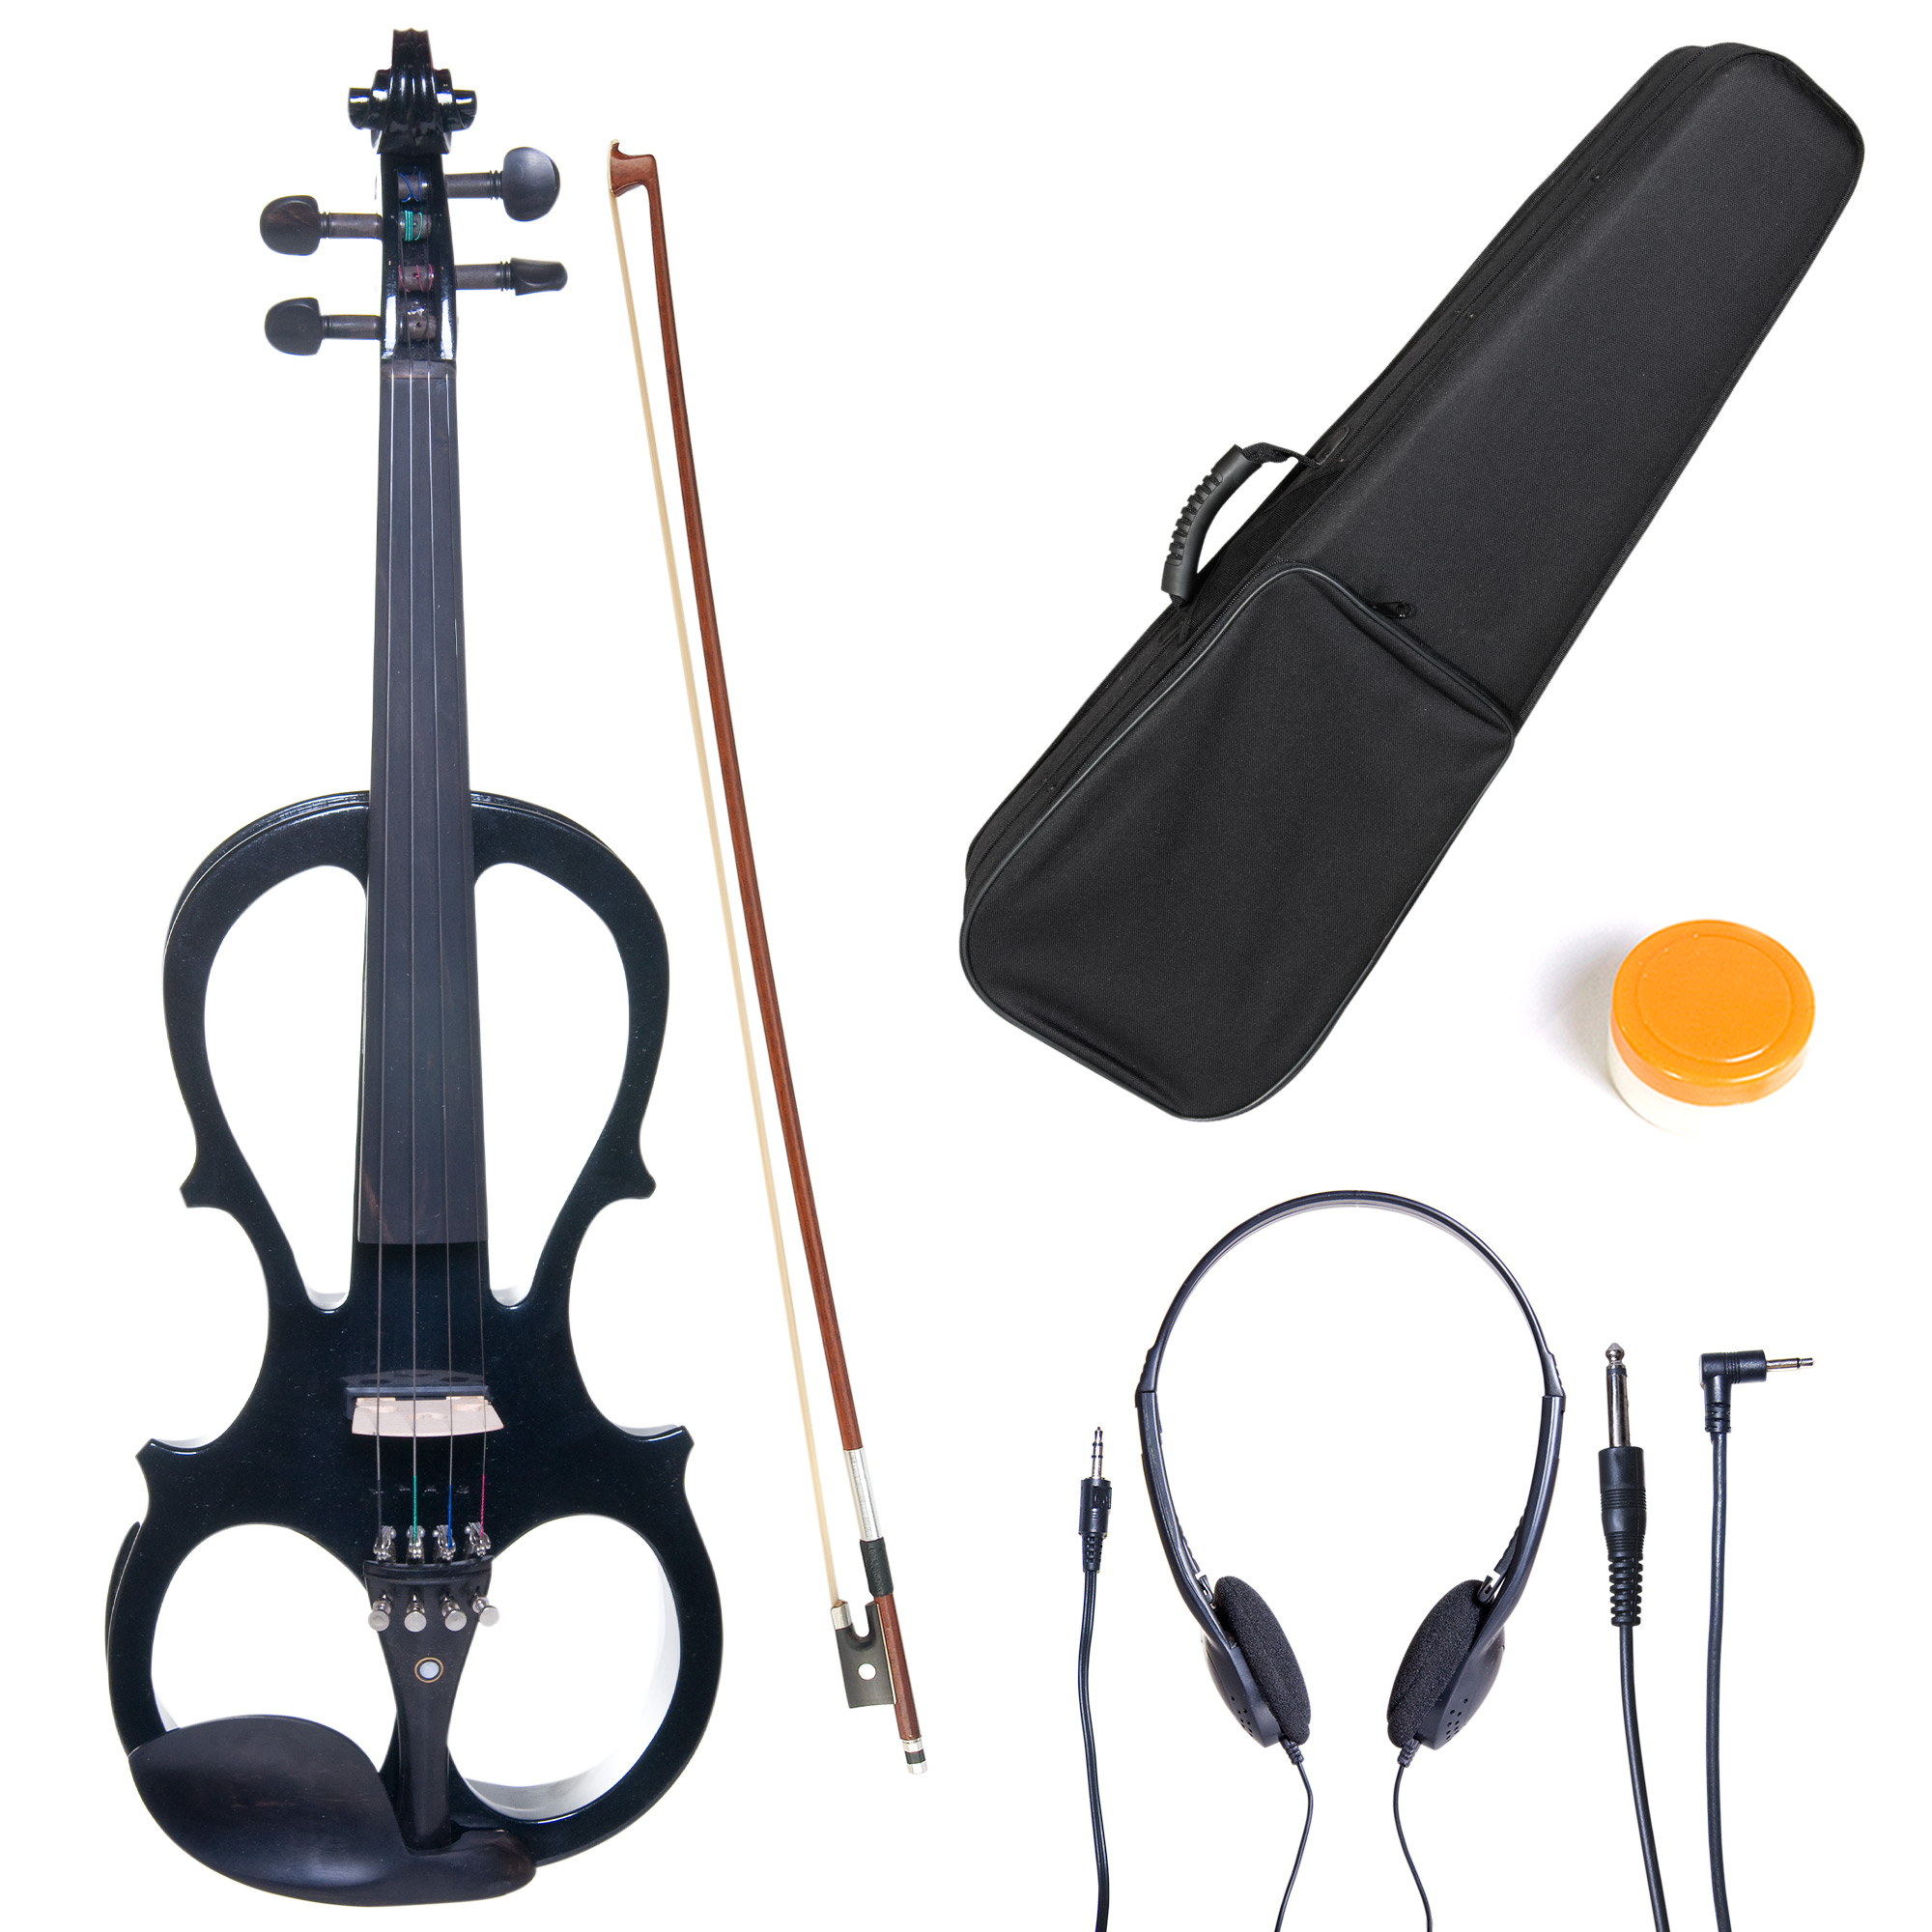 Cecilio 4/4 CEVN-1BK Solidwood Metallic Black Electric/Silent Violin with Ebony Fittings-Full Size